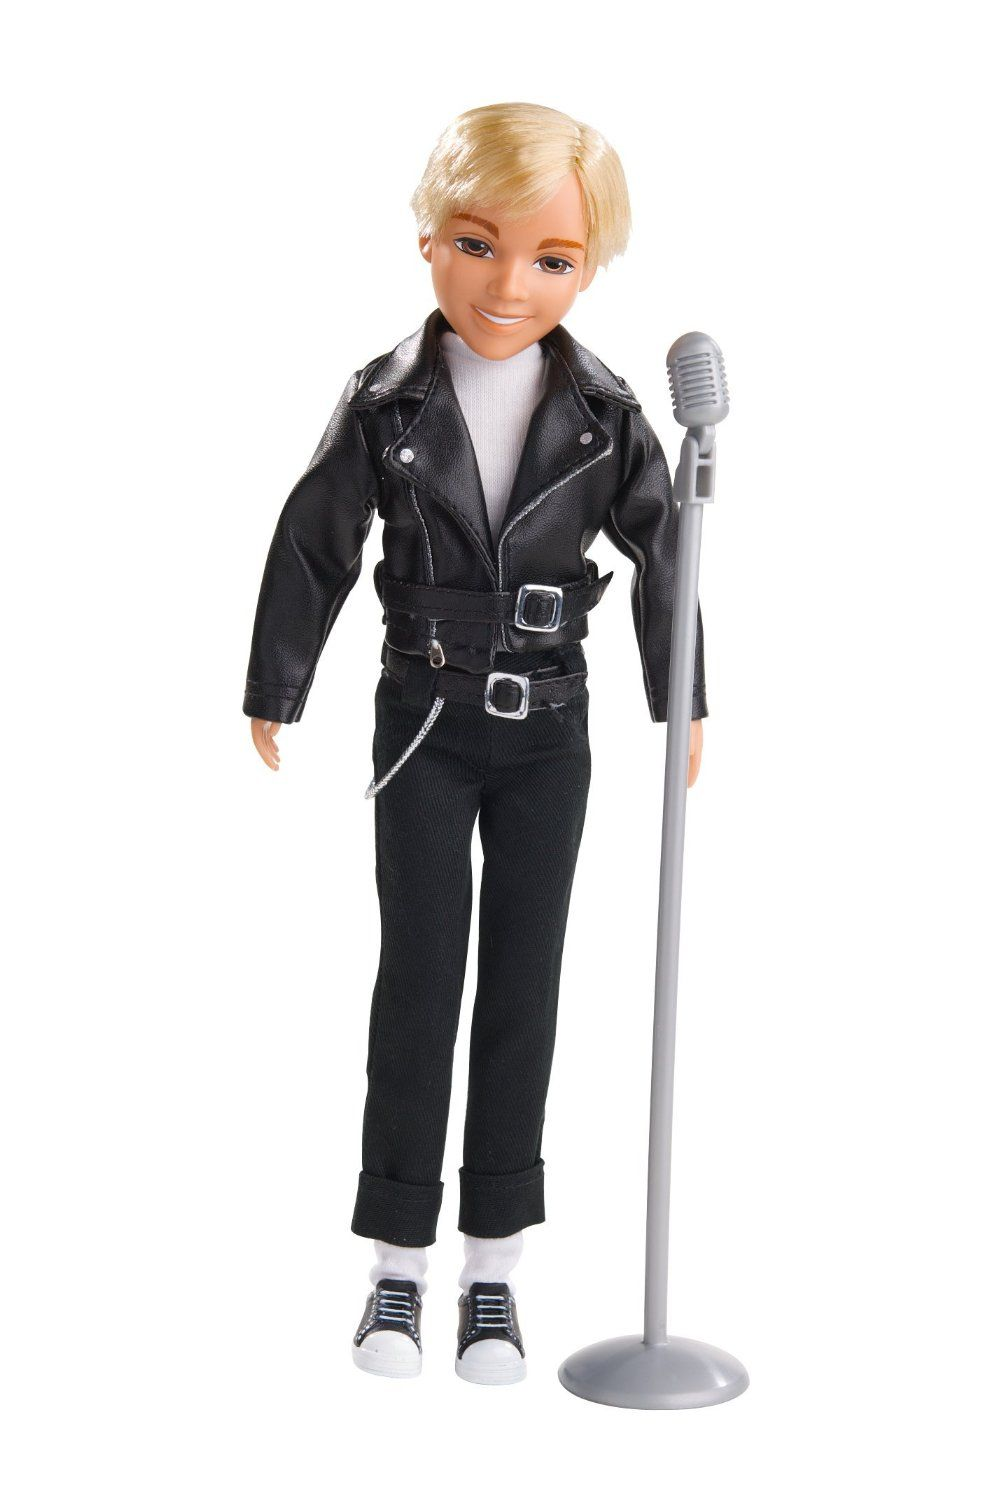 Teen Beach Movie Toys : Disney teen beach movie brady singing doll toys